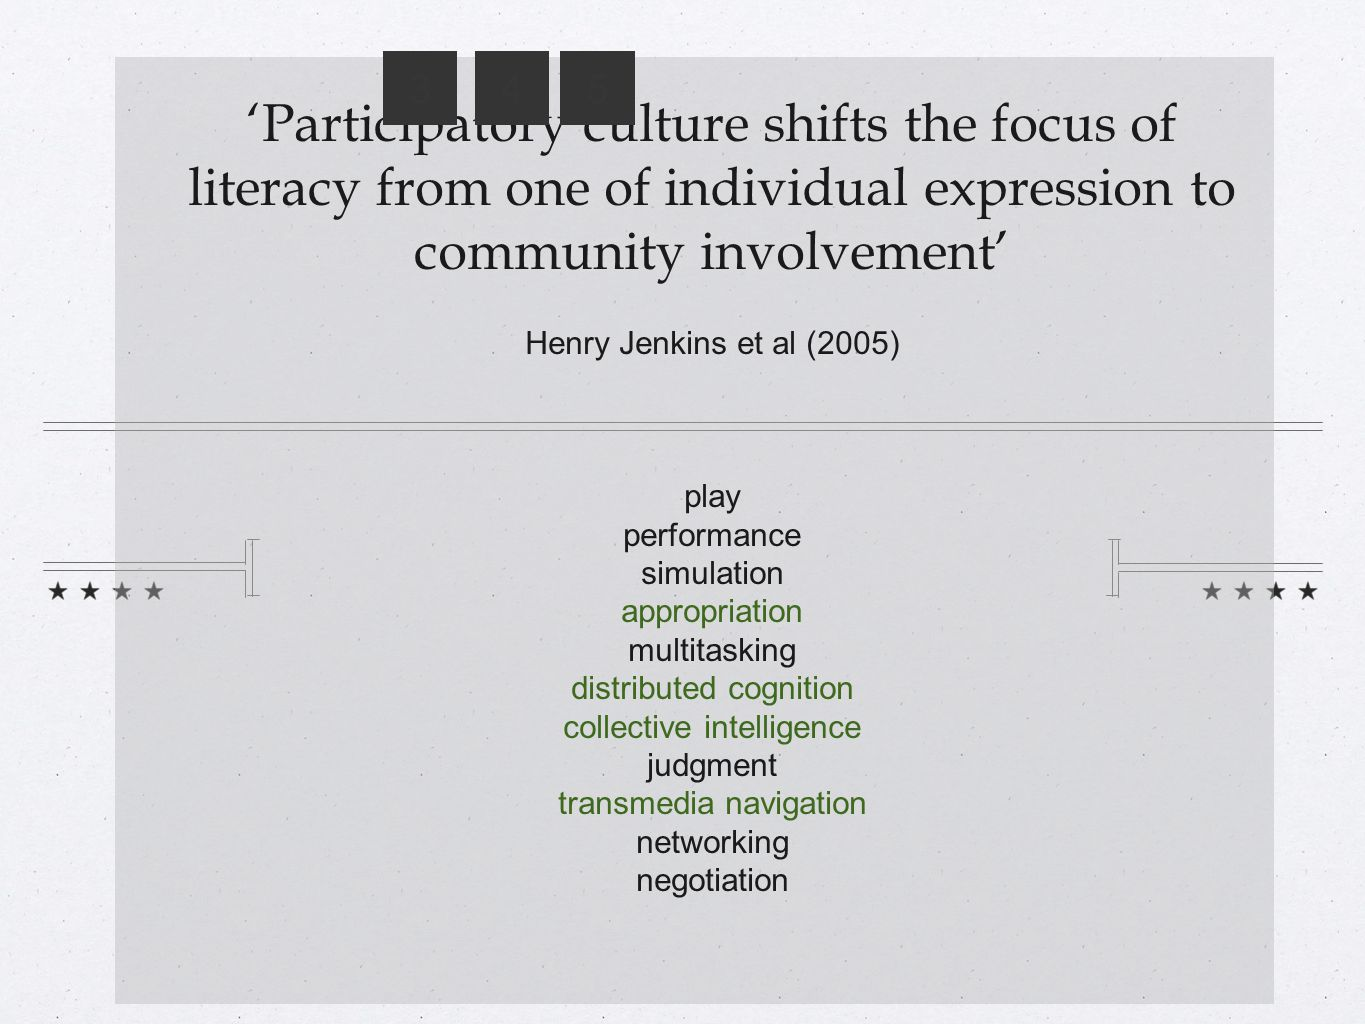 'Participatory culture shifts the focus of literacy from one of individual expression to community involvement' Henry Jenkins et al (2005) play performance simulation appropriation multitasking distributed cognition collective intelligence judgment transmedia navigation networking negotiation 345